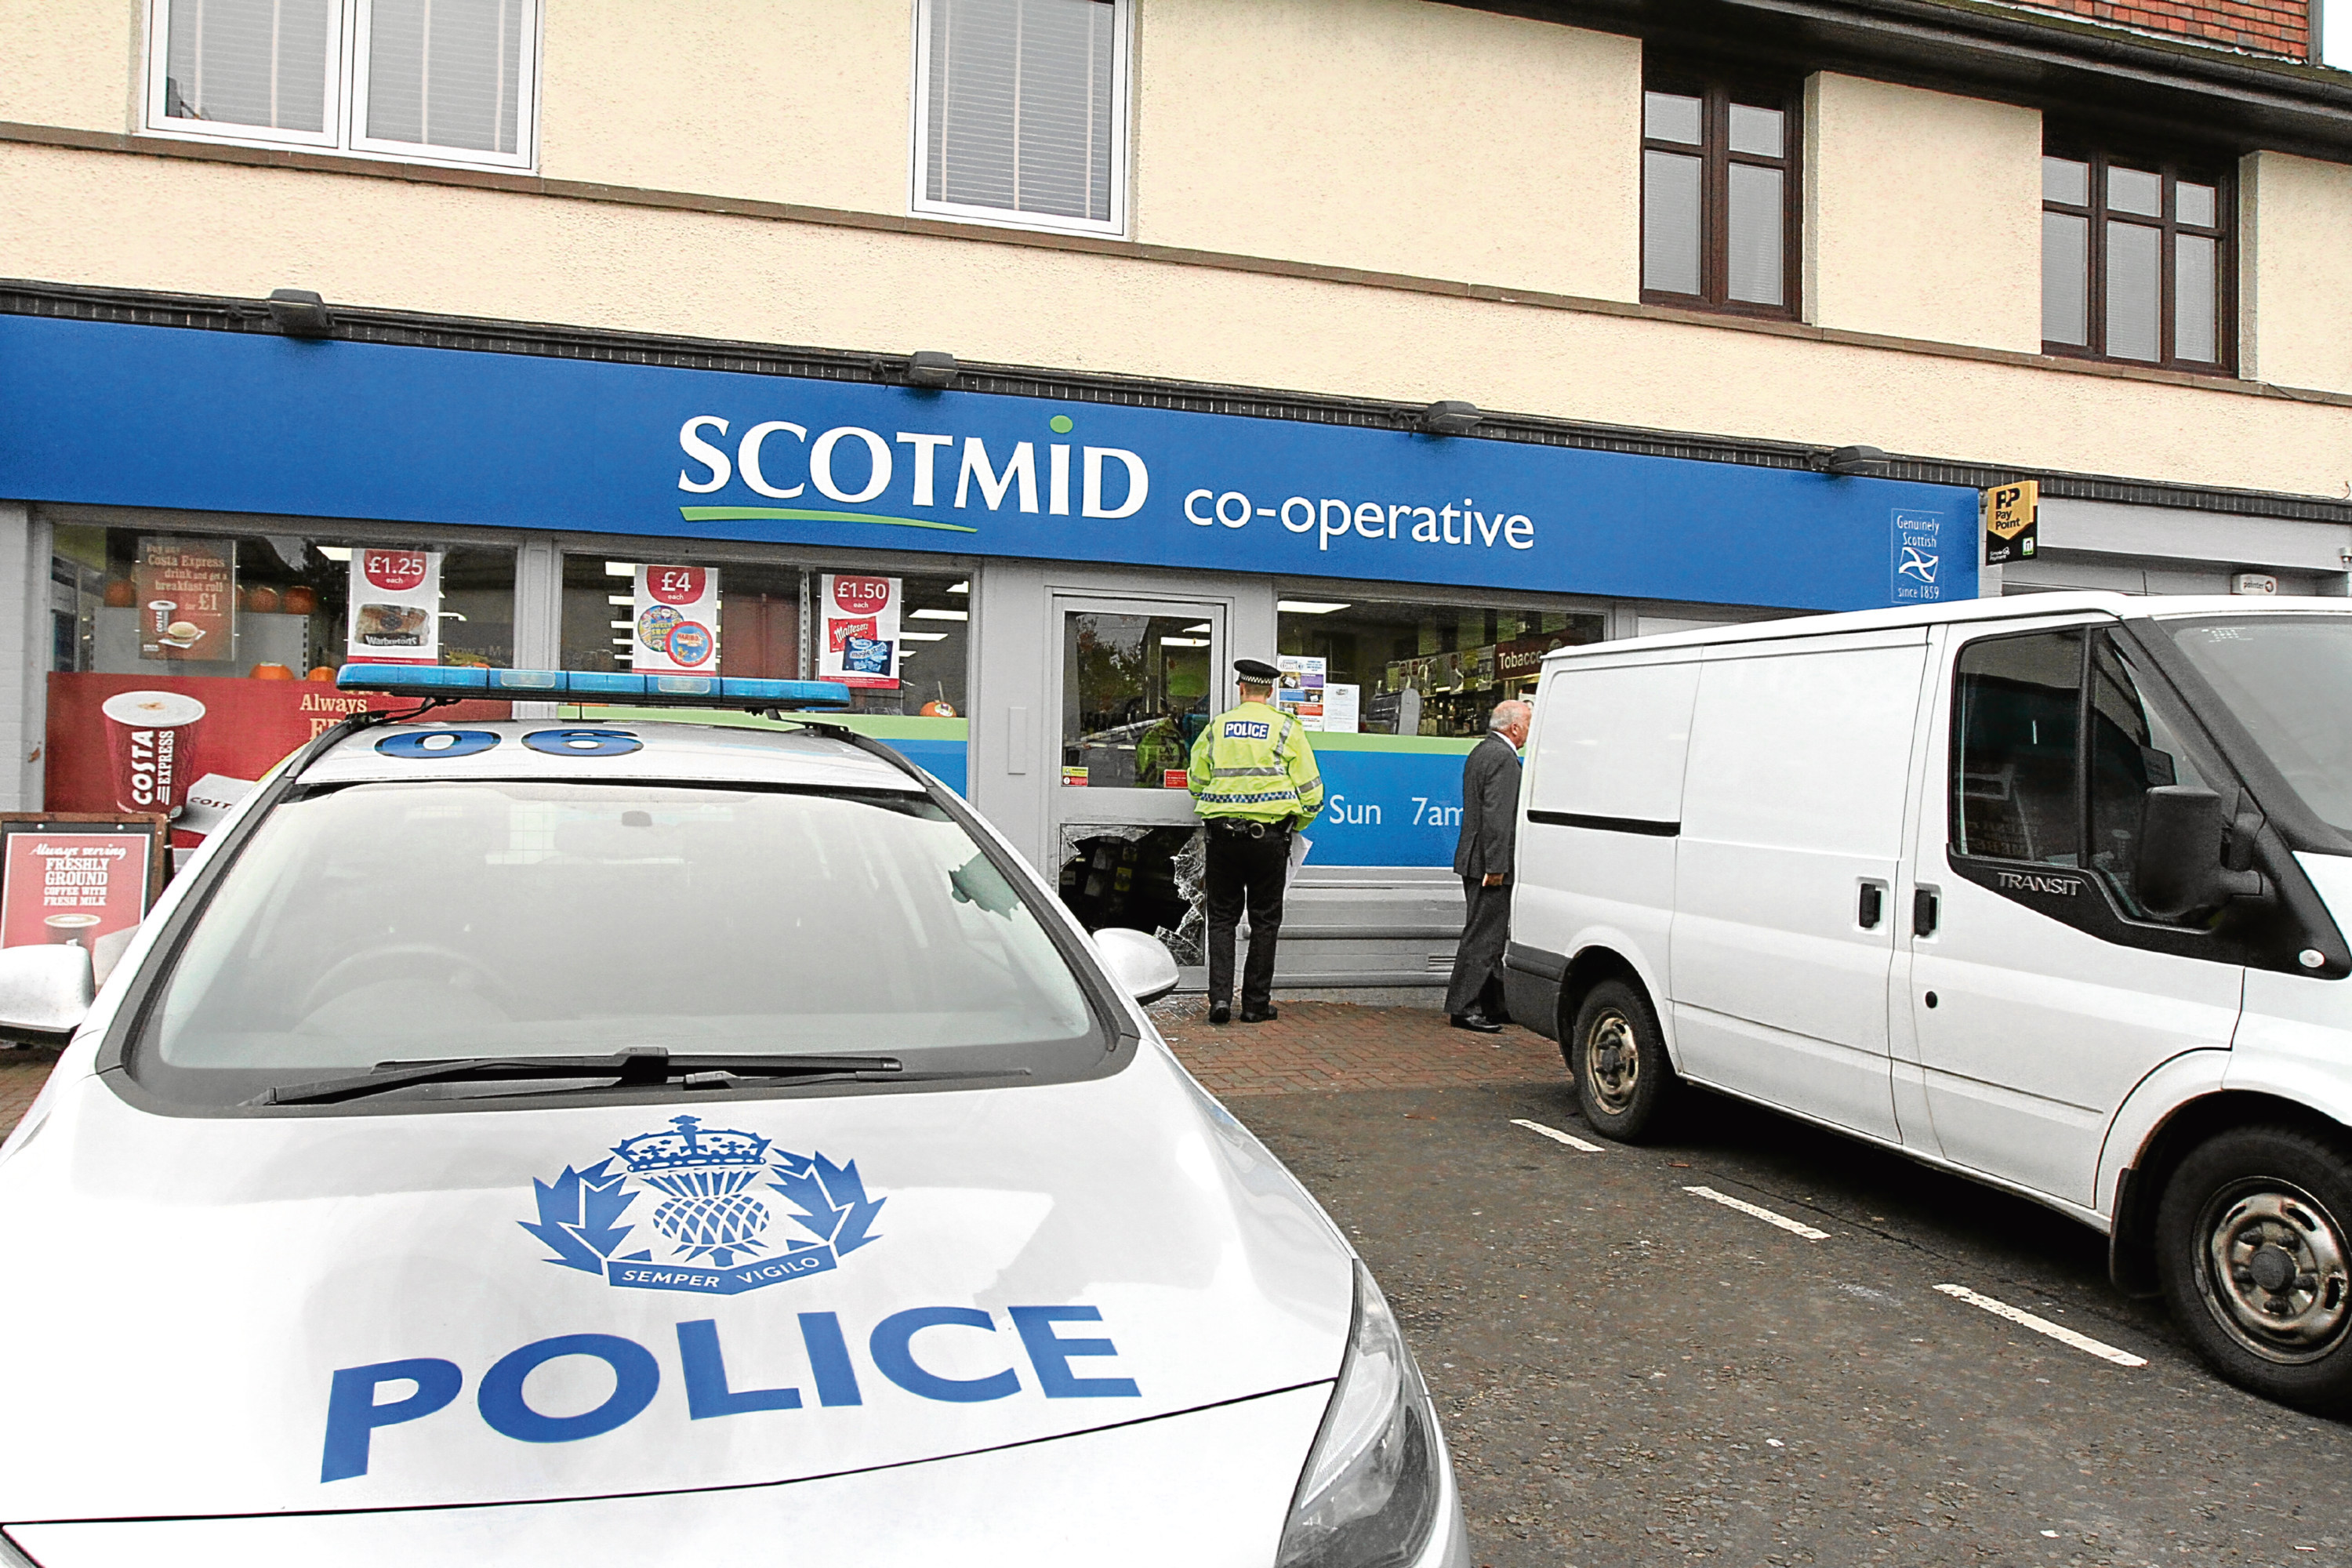 Police attend a break-in at the Scotmid store in Invergowrie, where the bottom panel of the front door was smashed